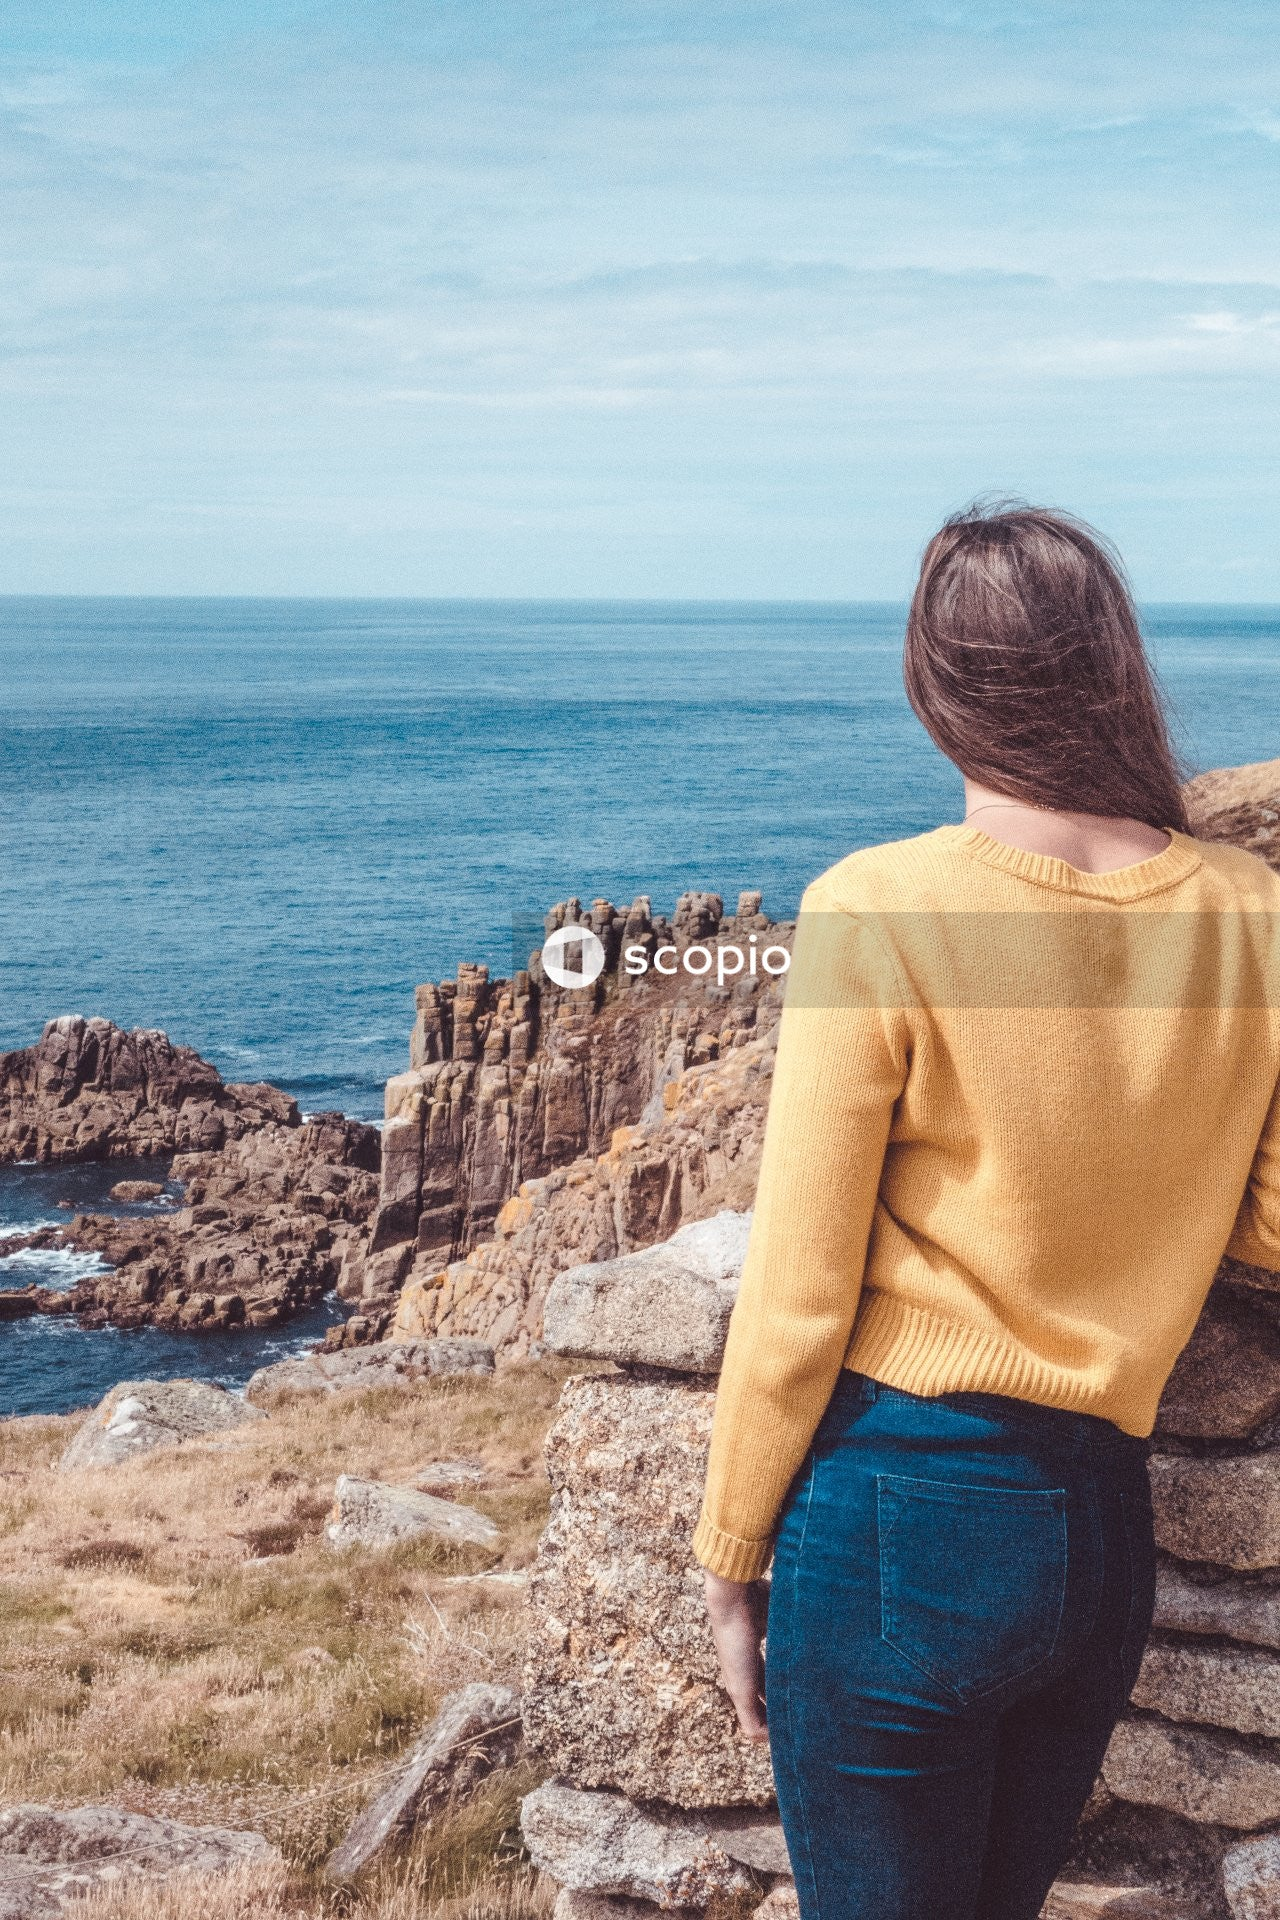 Woman in yellow sweater and blue denim jeans standing on rock formation near sea